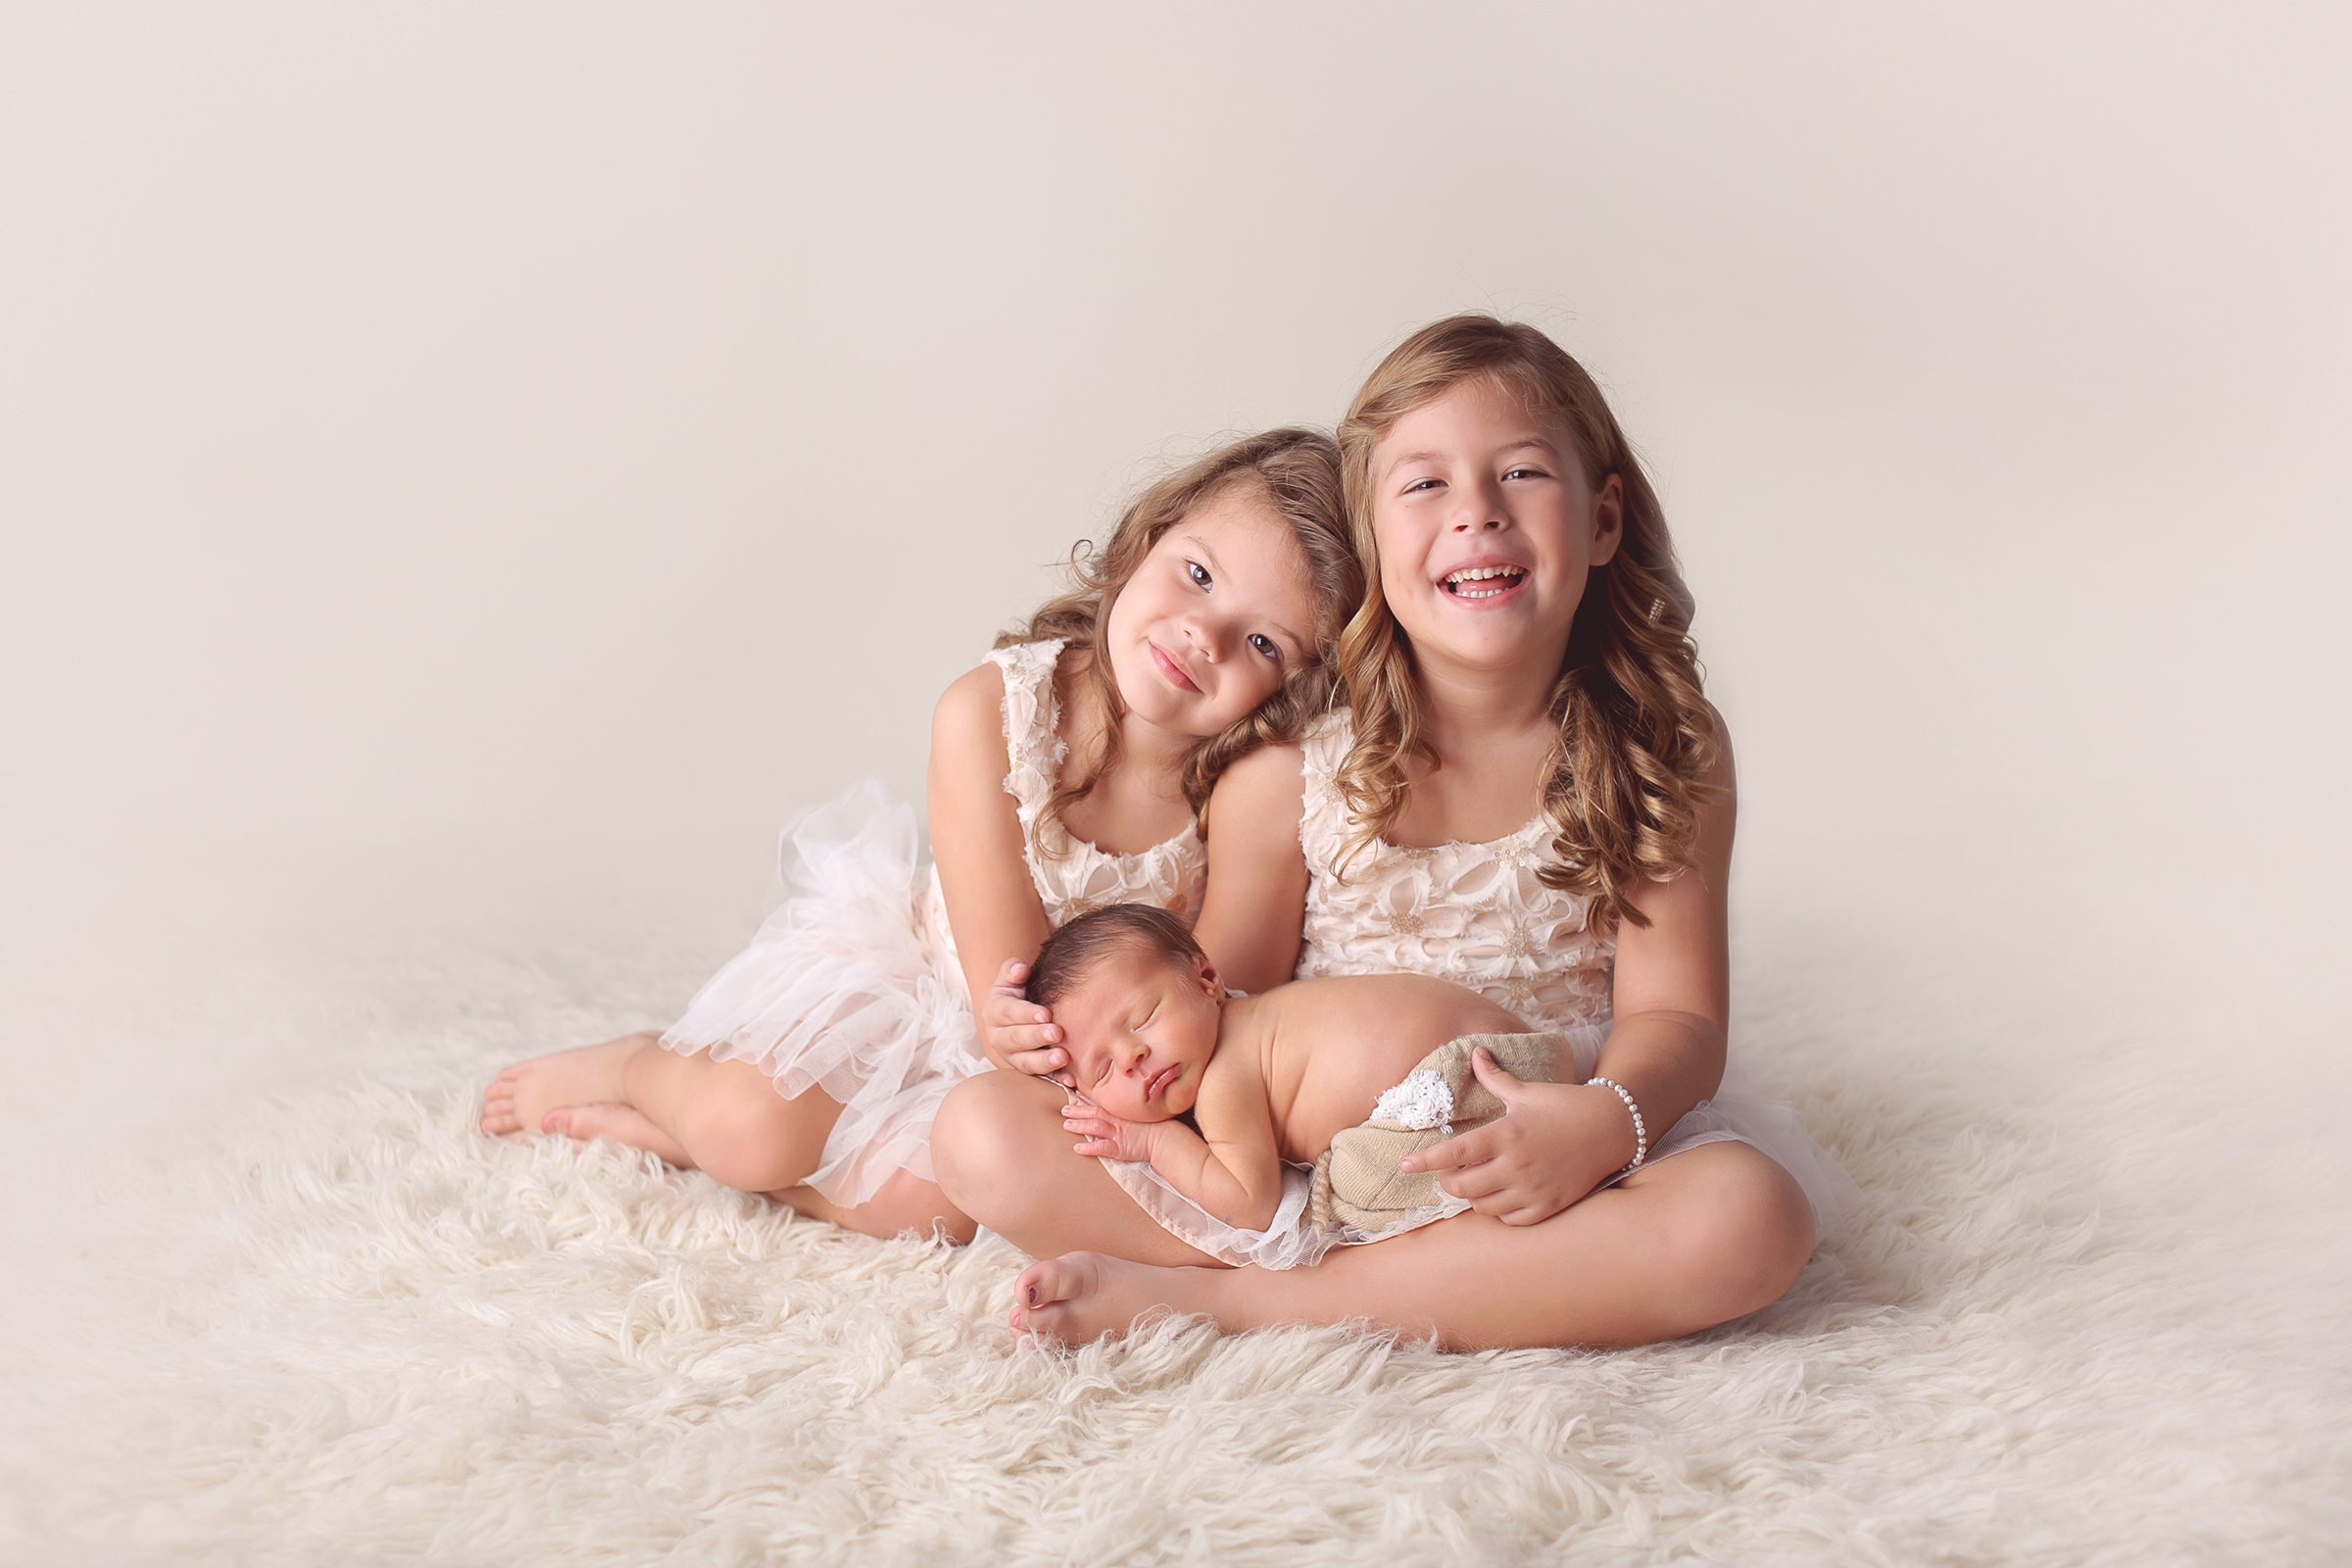 Siblings posed with infant newborn baby brother on white flokati rug in La Jolla photography studio